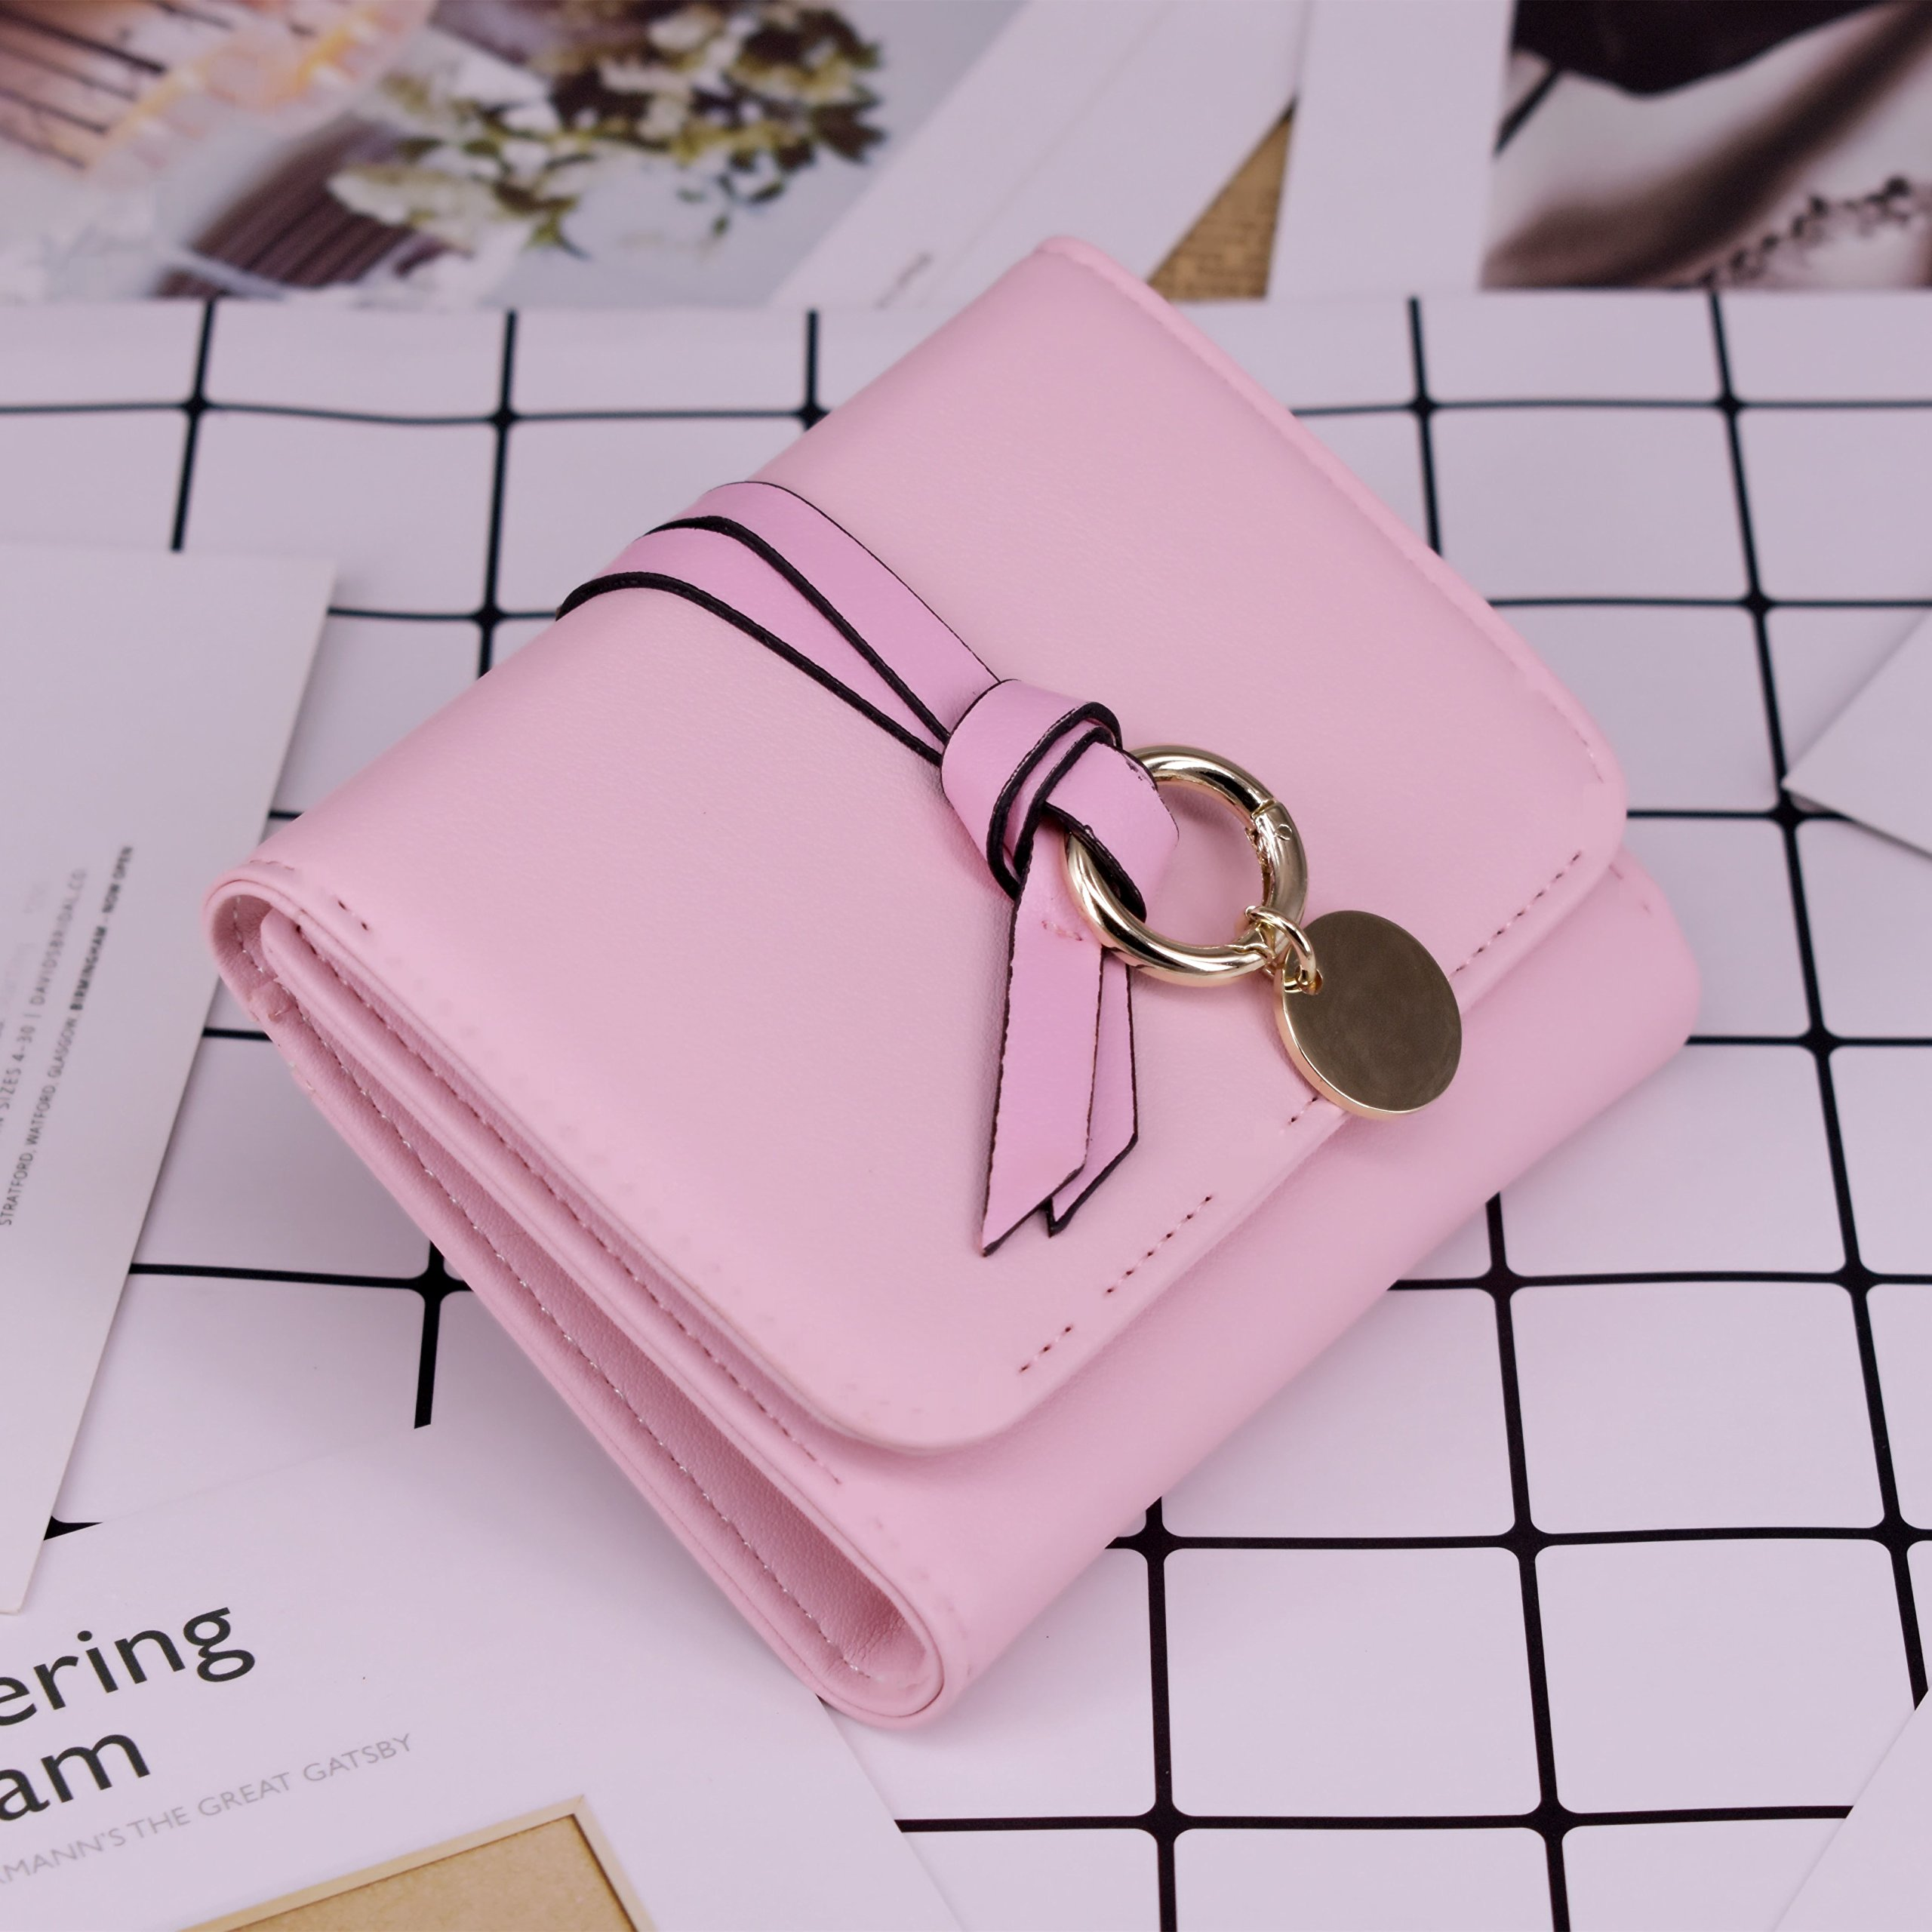 ABC STORY Womens Cute Pink Purse Card Holder Small Trifold Wallets For Teen Girls by ABC STORY (Image #2)